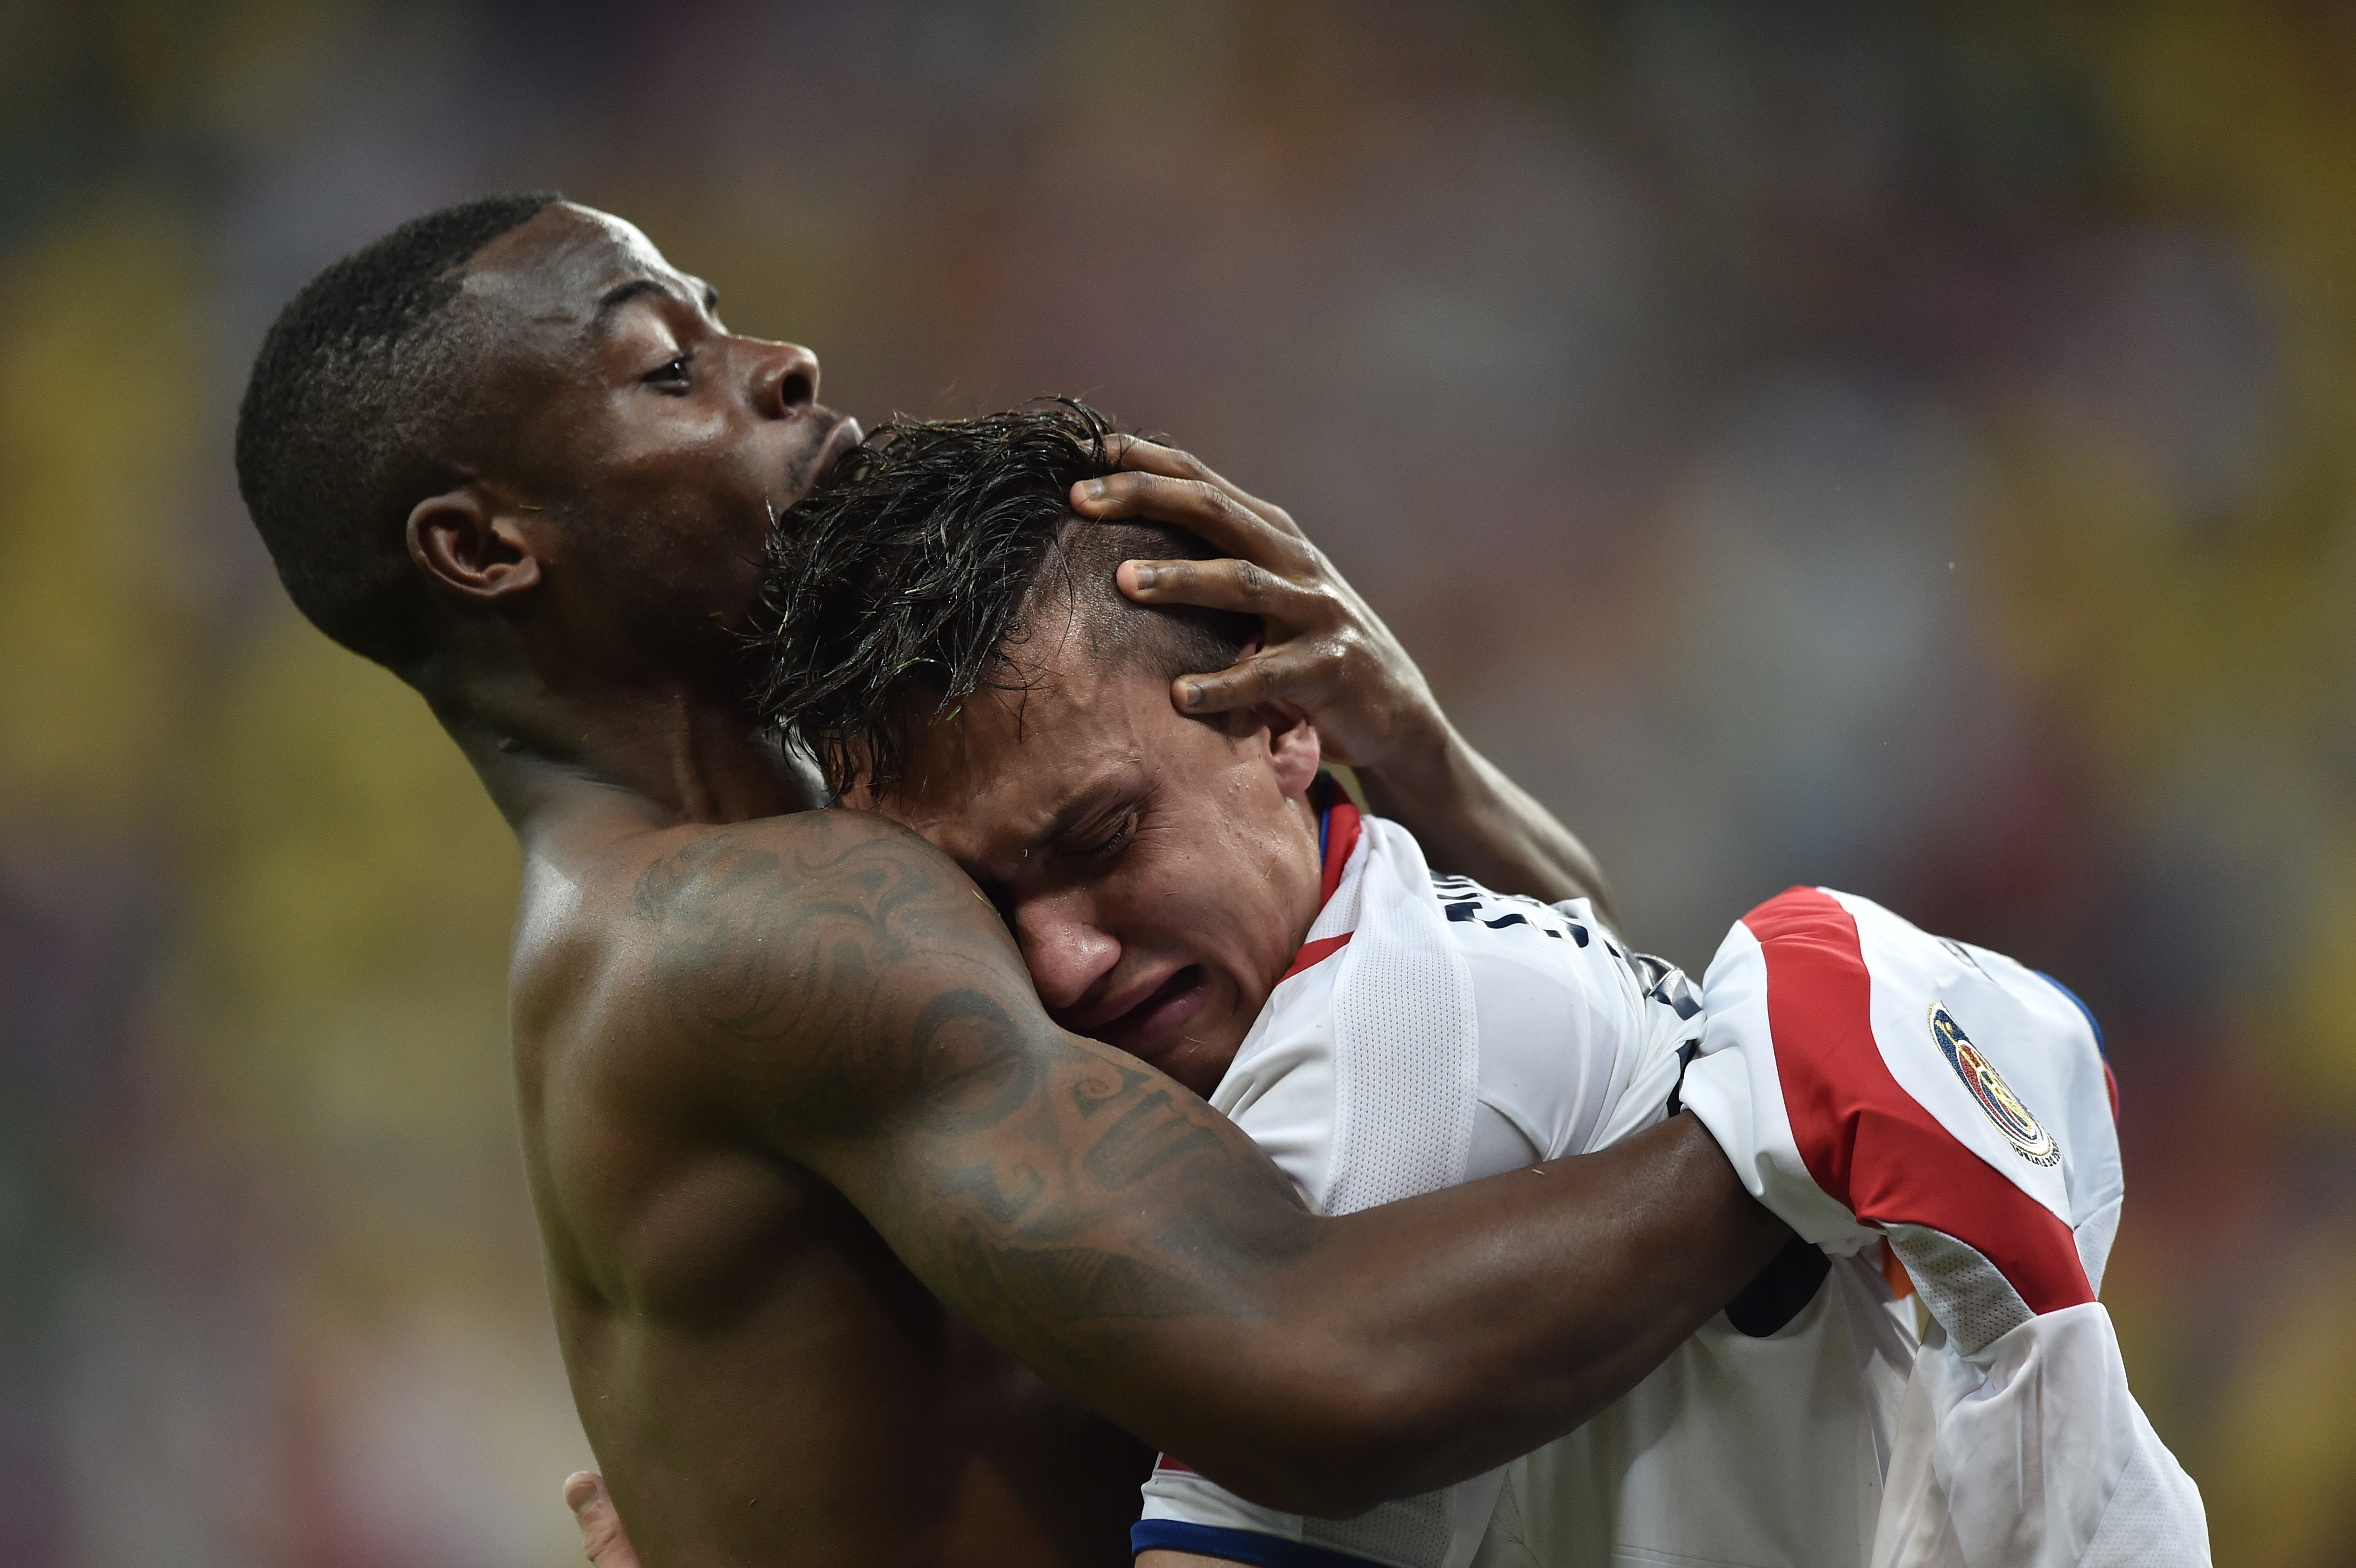 Costa Rica's defender Waylon Francis (L) and Costa Rica's midfielder Jose Miguel Cubero celebrate after winning a match with Greece during the 2014 FIFA World Cup on June 29, 2014.